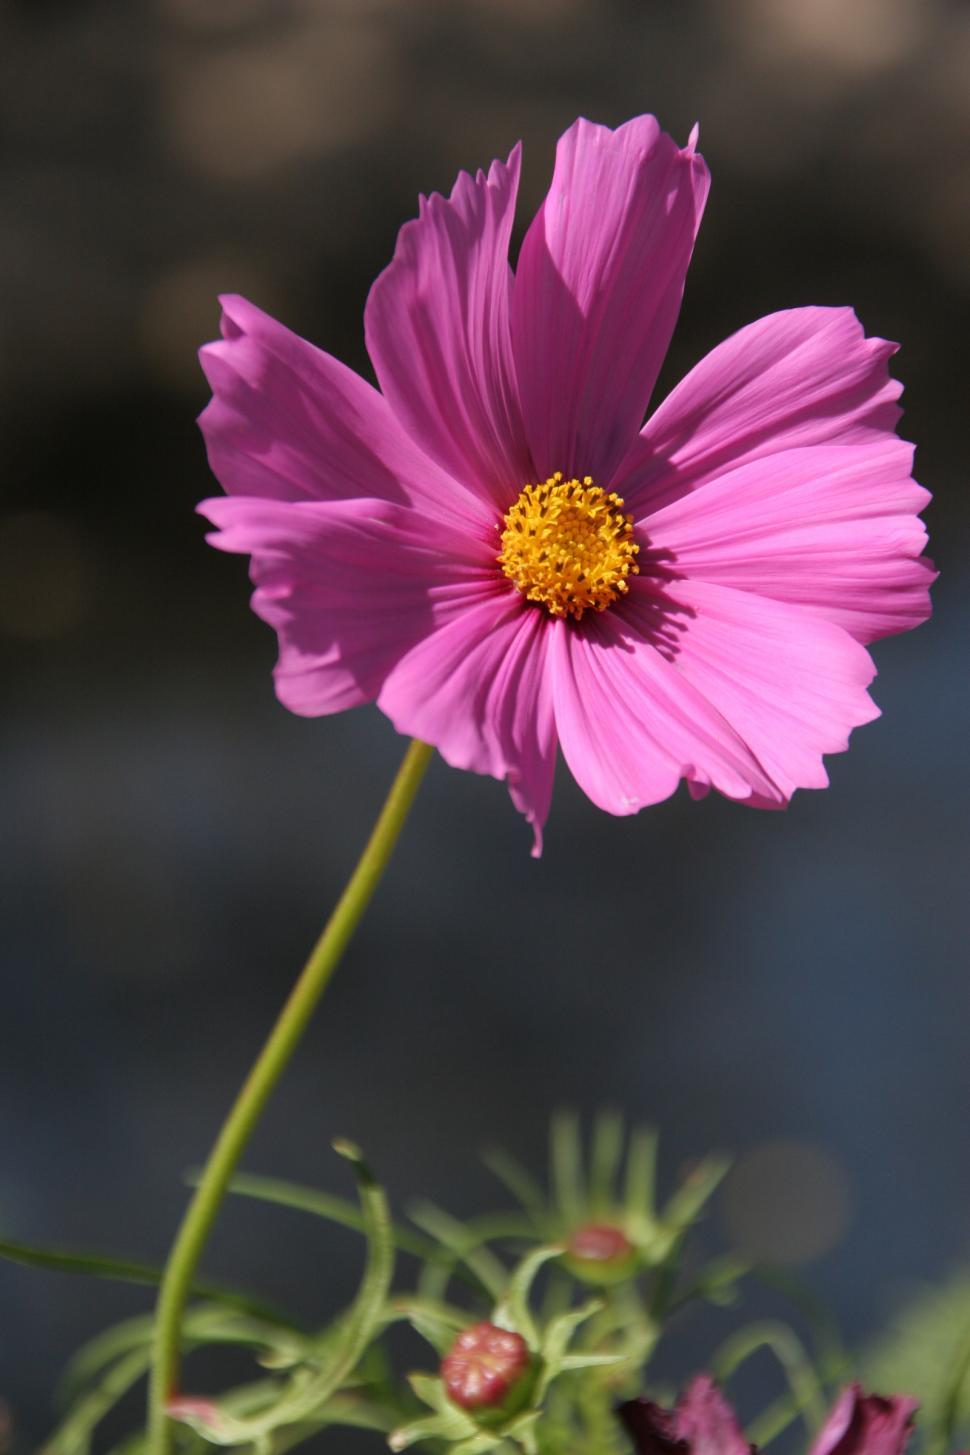 Get free stock photos of pink daisy flowers online download latest download free stock hd photo of pink daisy flowers online izmirmasajfo